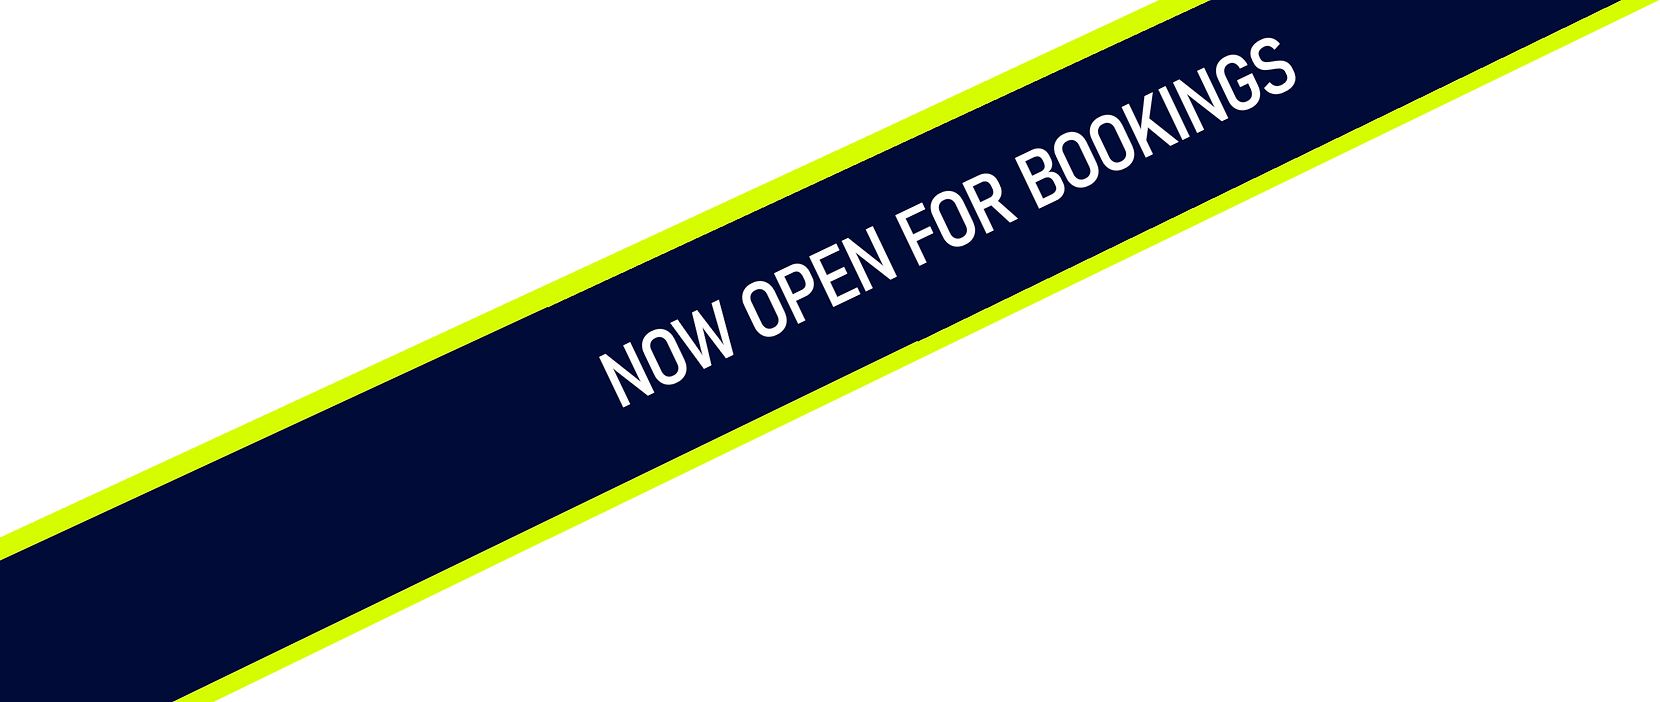 Bookings_Open_Banner.png